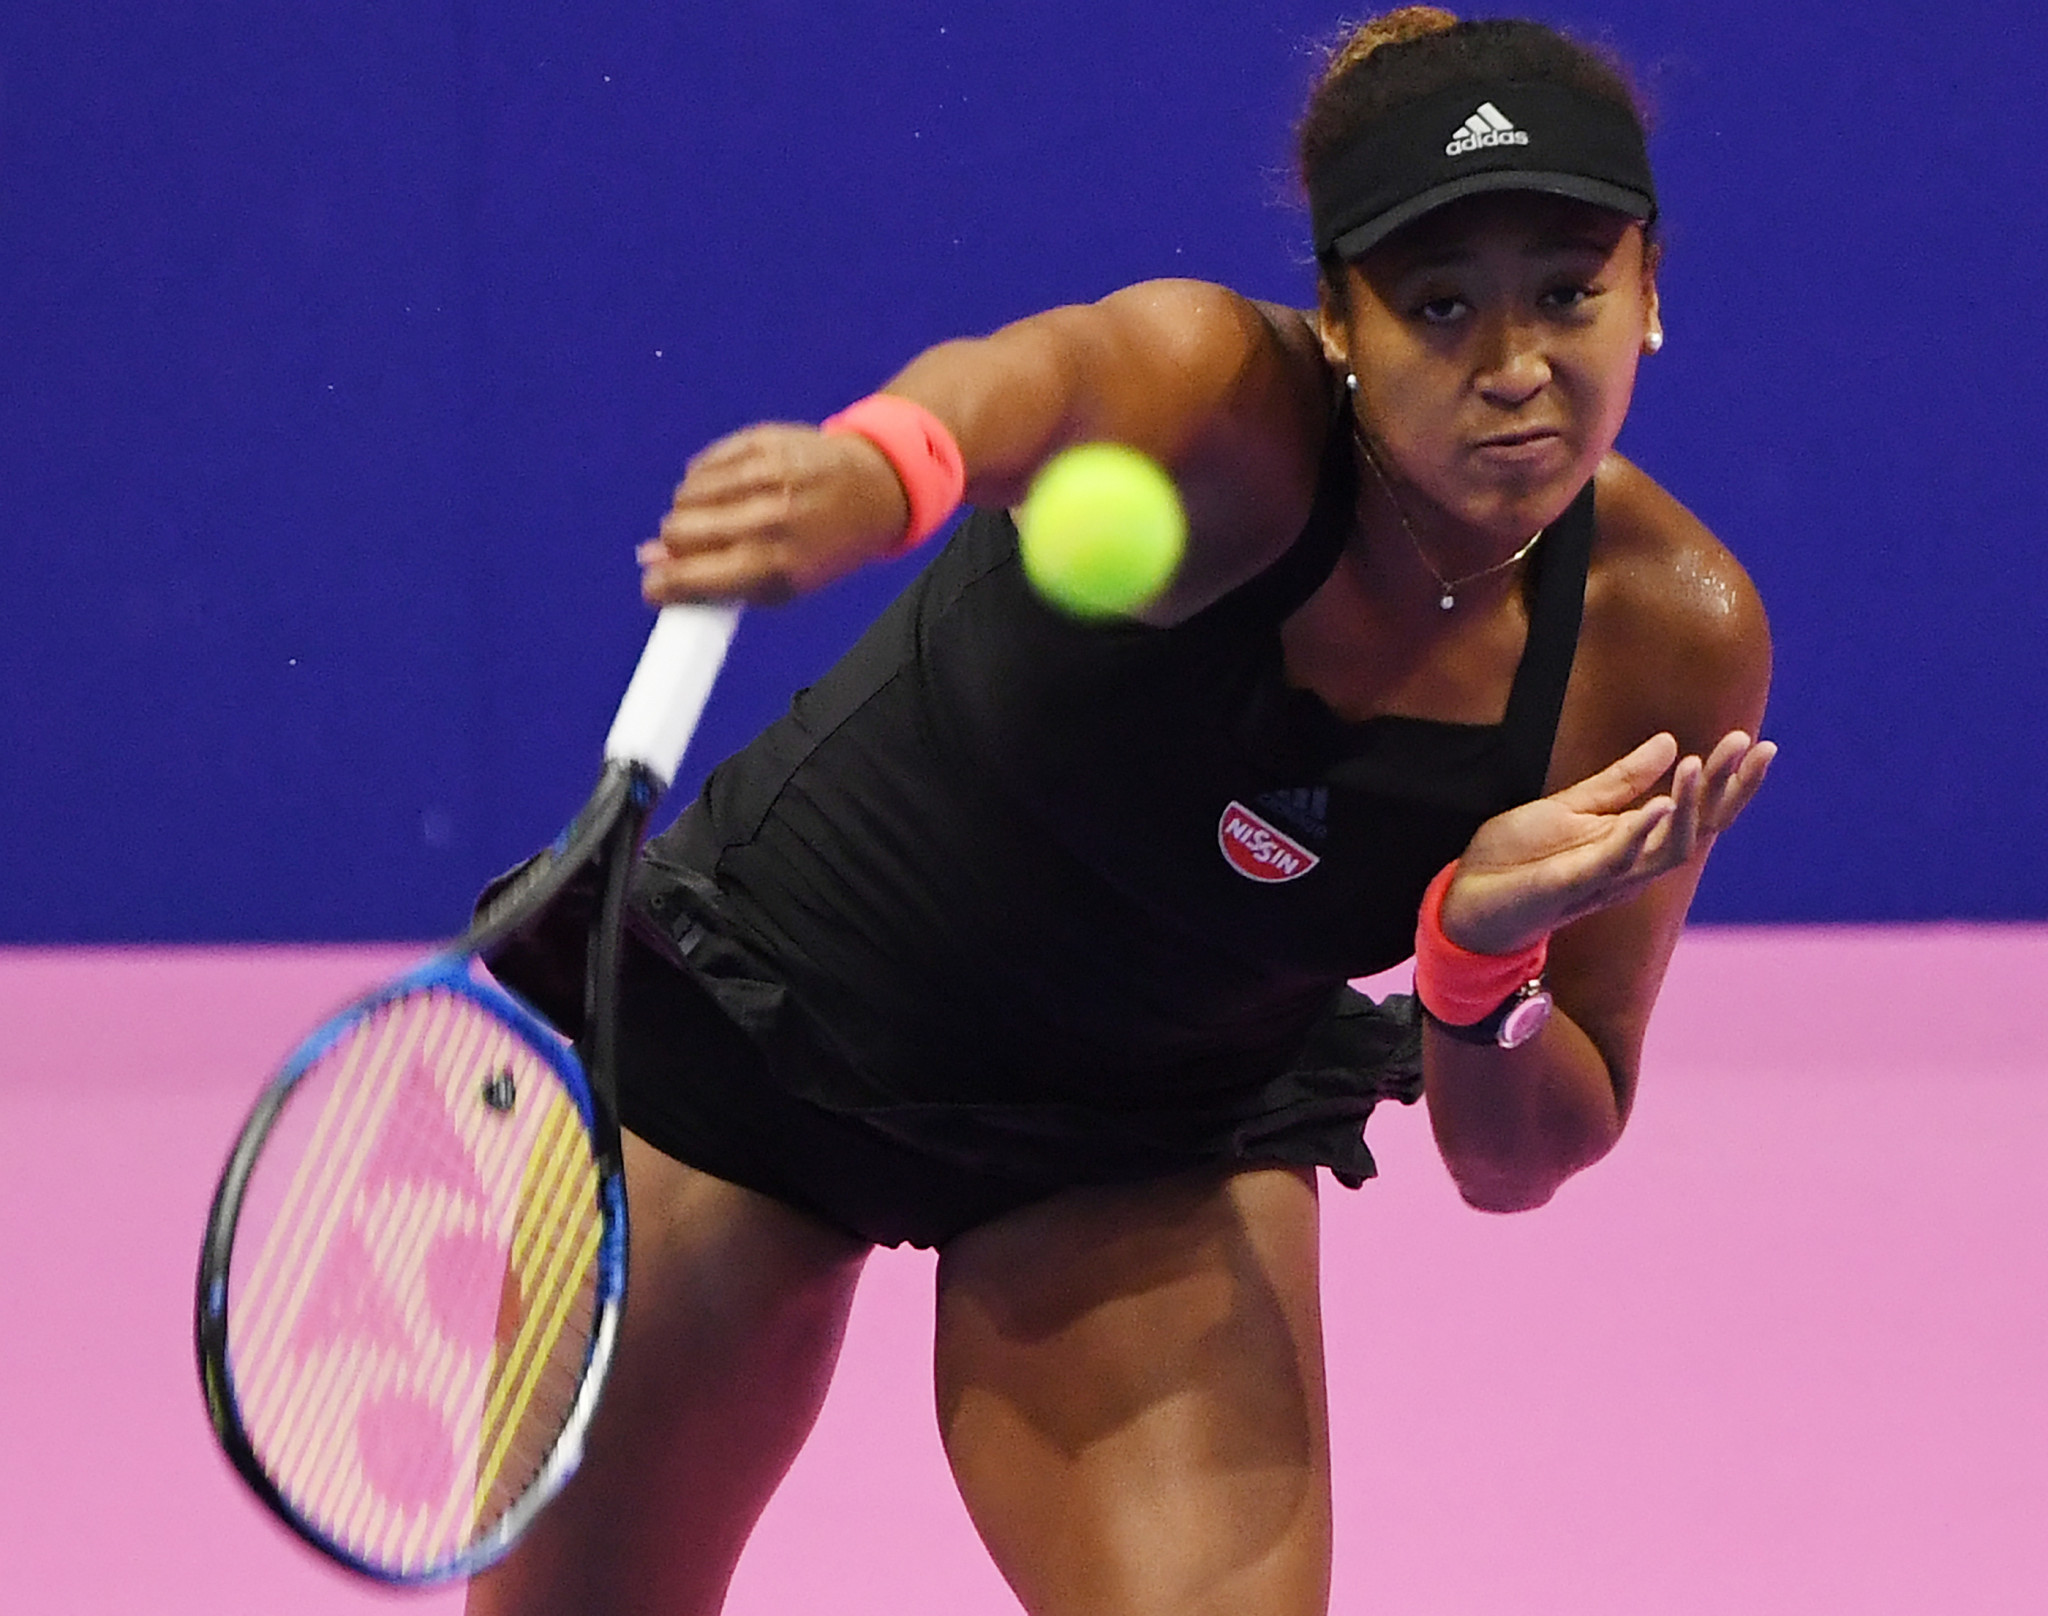 Naomi Osaka of Japan is through to the semi-finals of the Pan Pacific Open in Japan after beating Czech Barbora Strýcová ©Getty Images